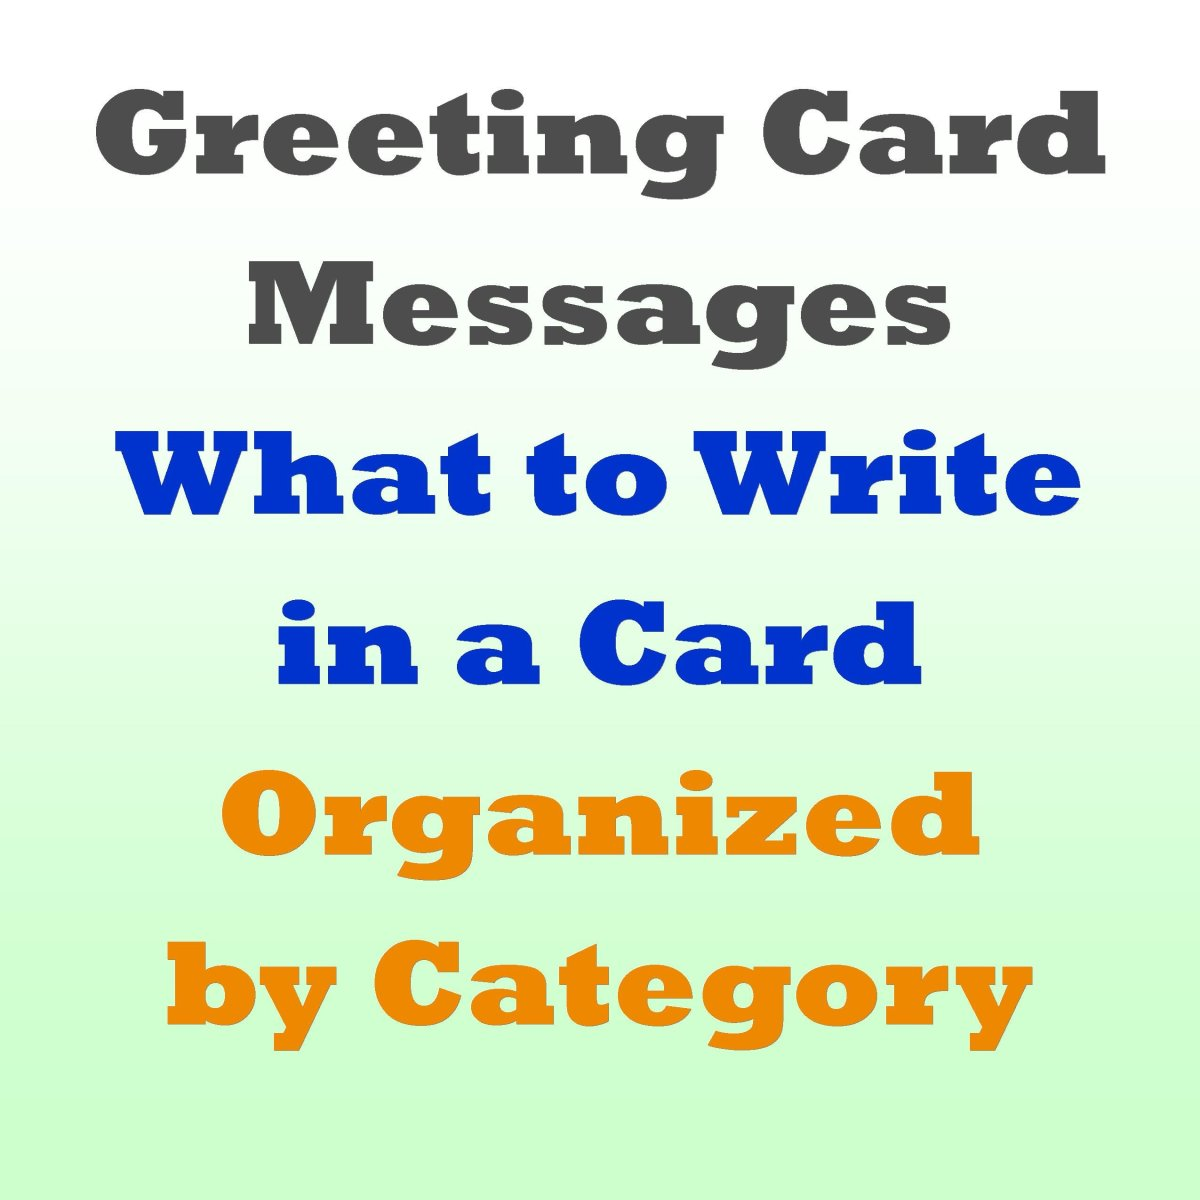 Greeting card messages examples of what to write hubpages magicingreecefo Images